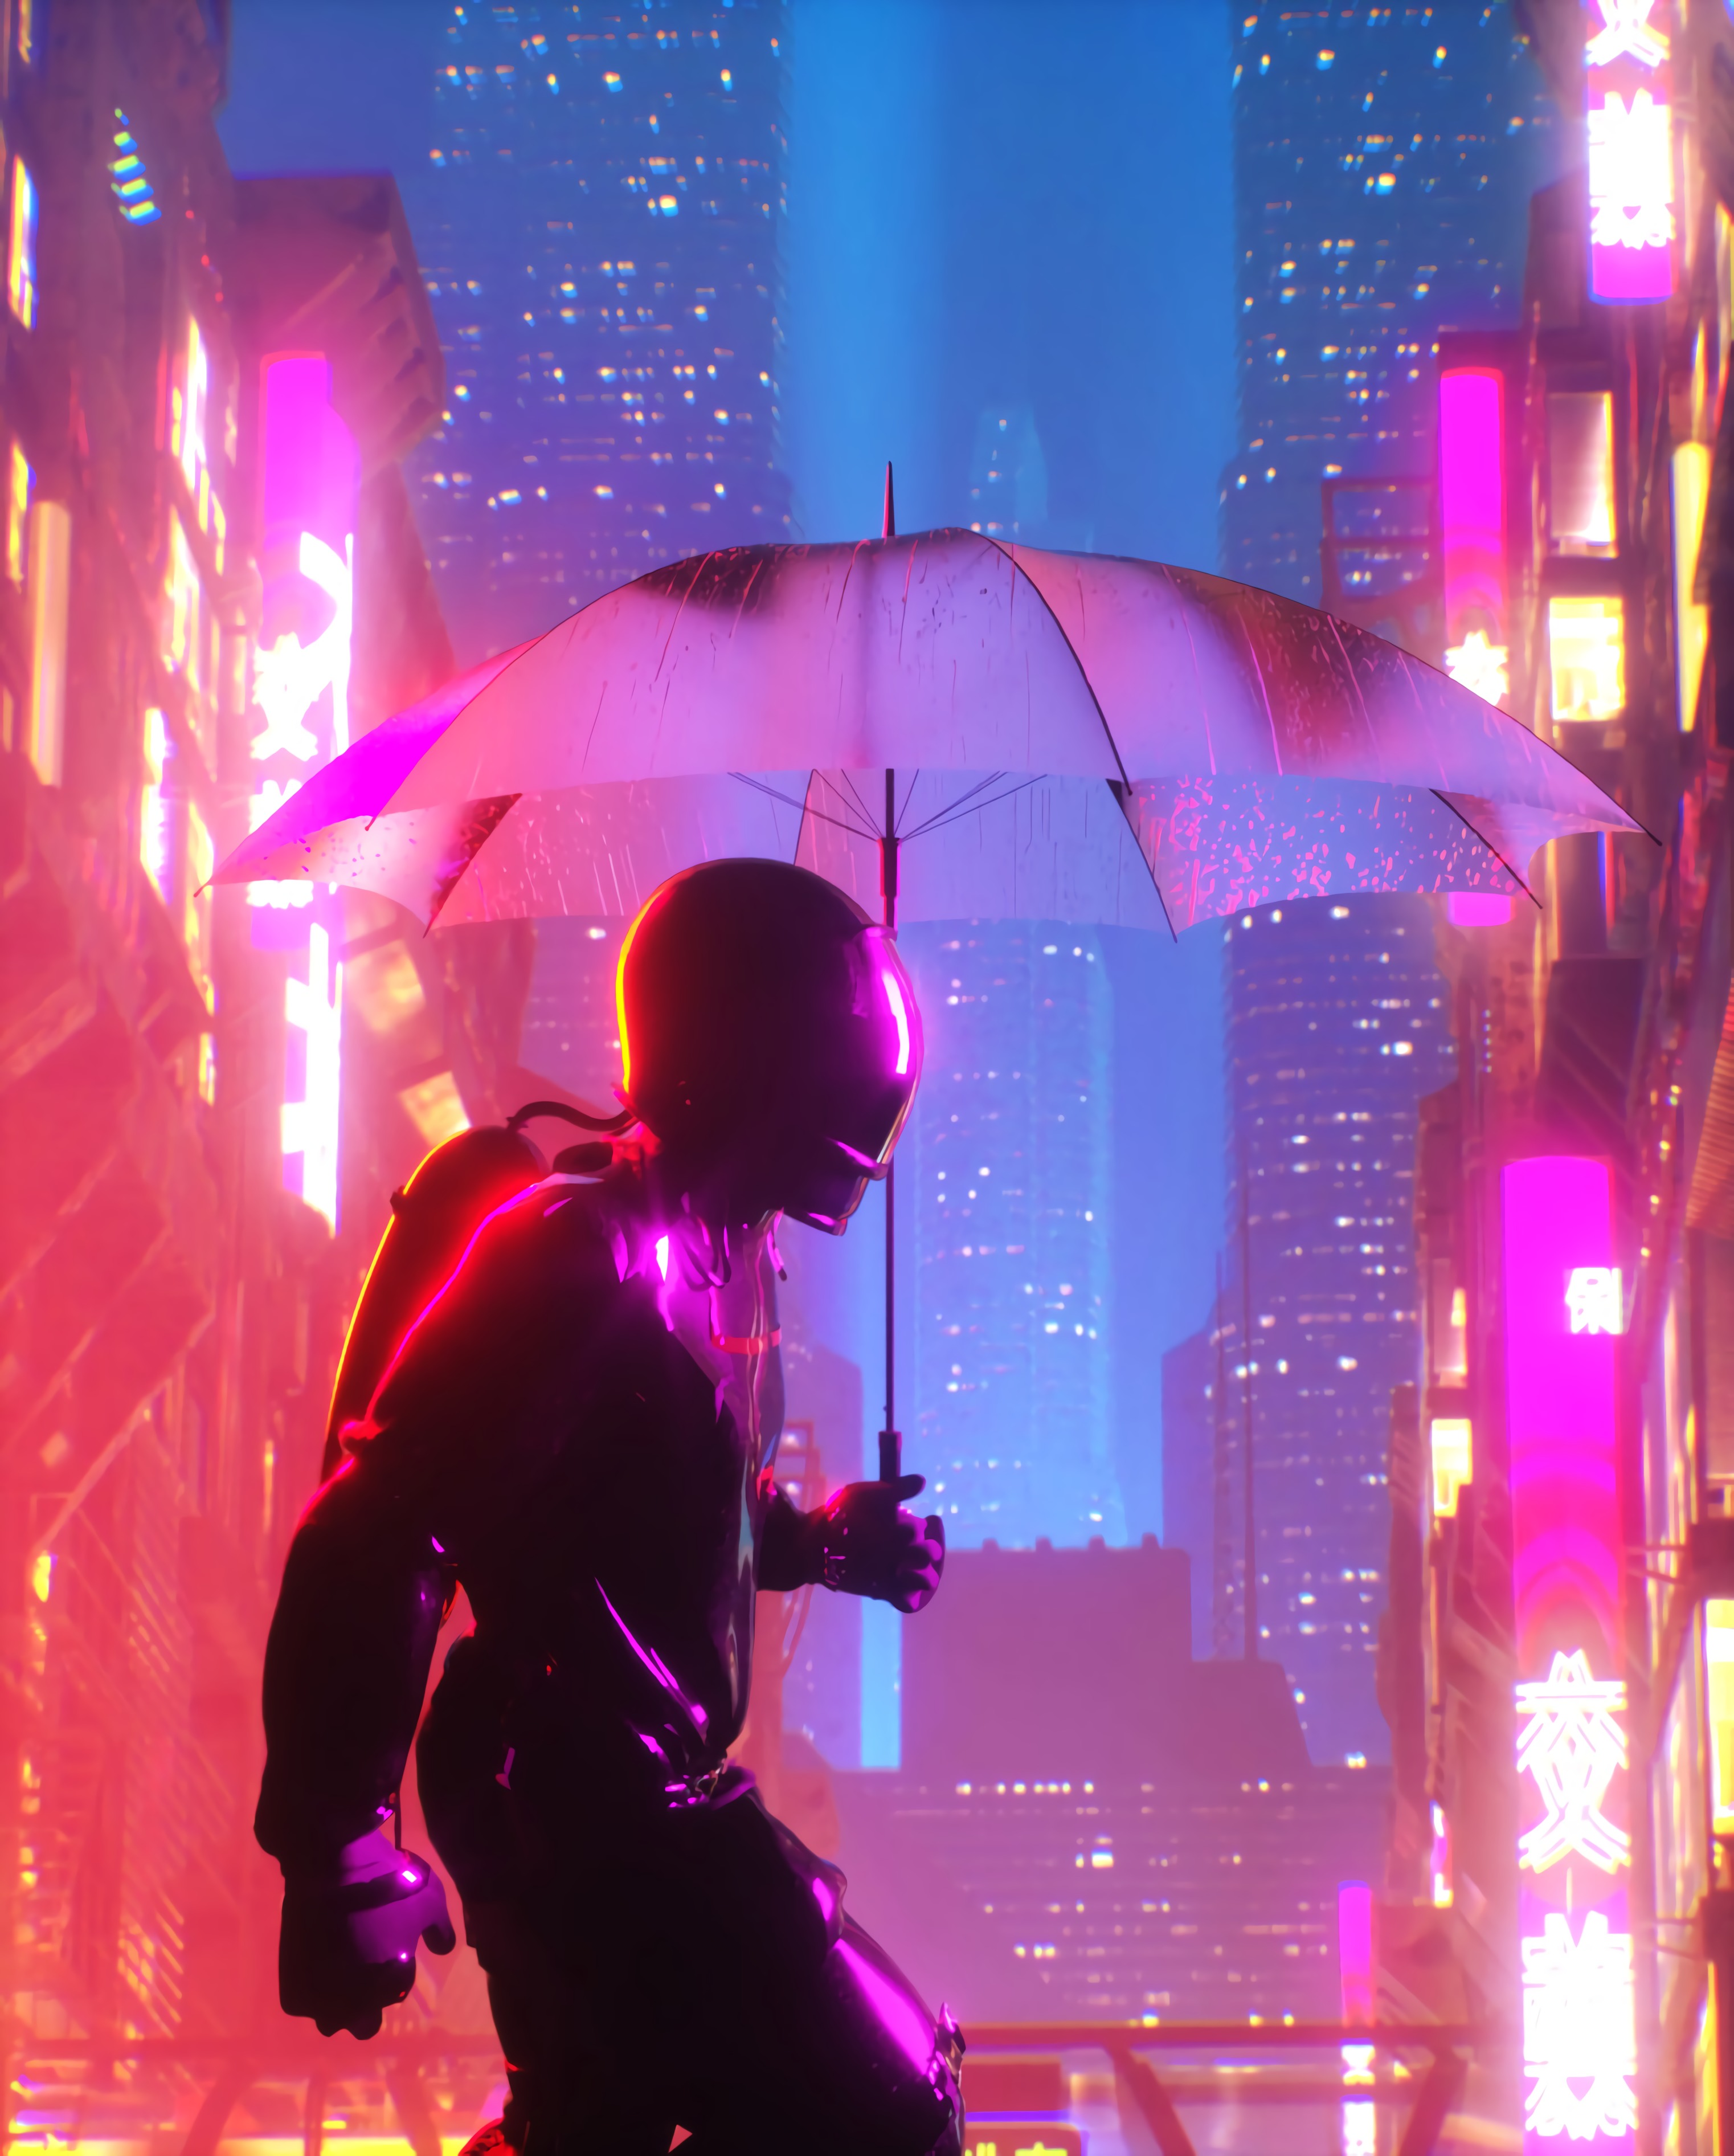 67645 Screensavers and Wallpapers Umbrella for phone. Download Art, City, Building, Cyberpunk, Neon, Glow, Umbrella, Cyborg pictures for free